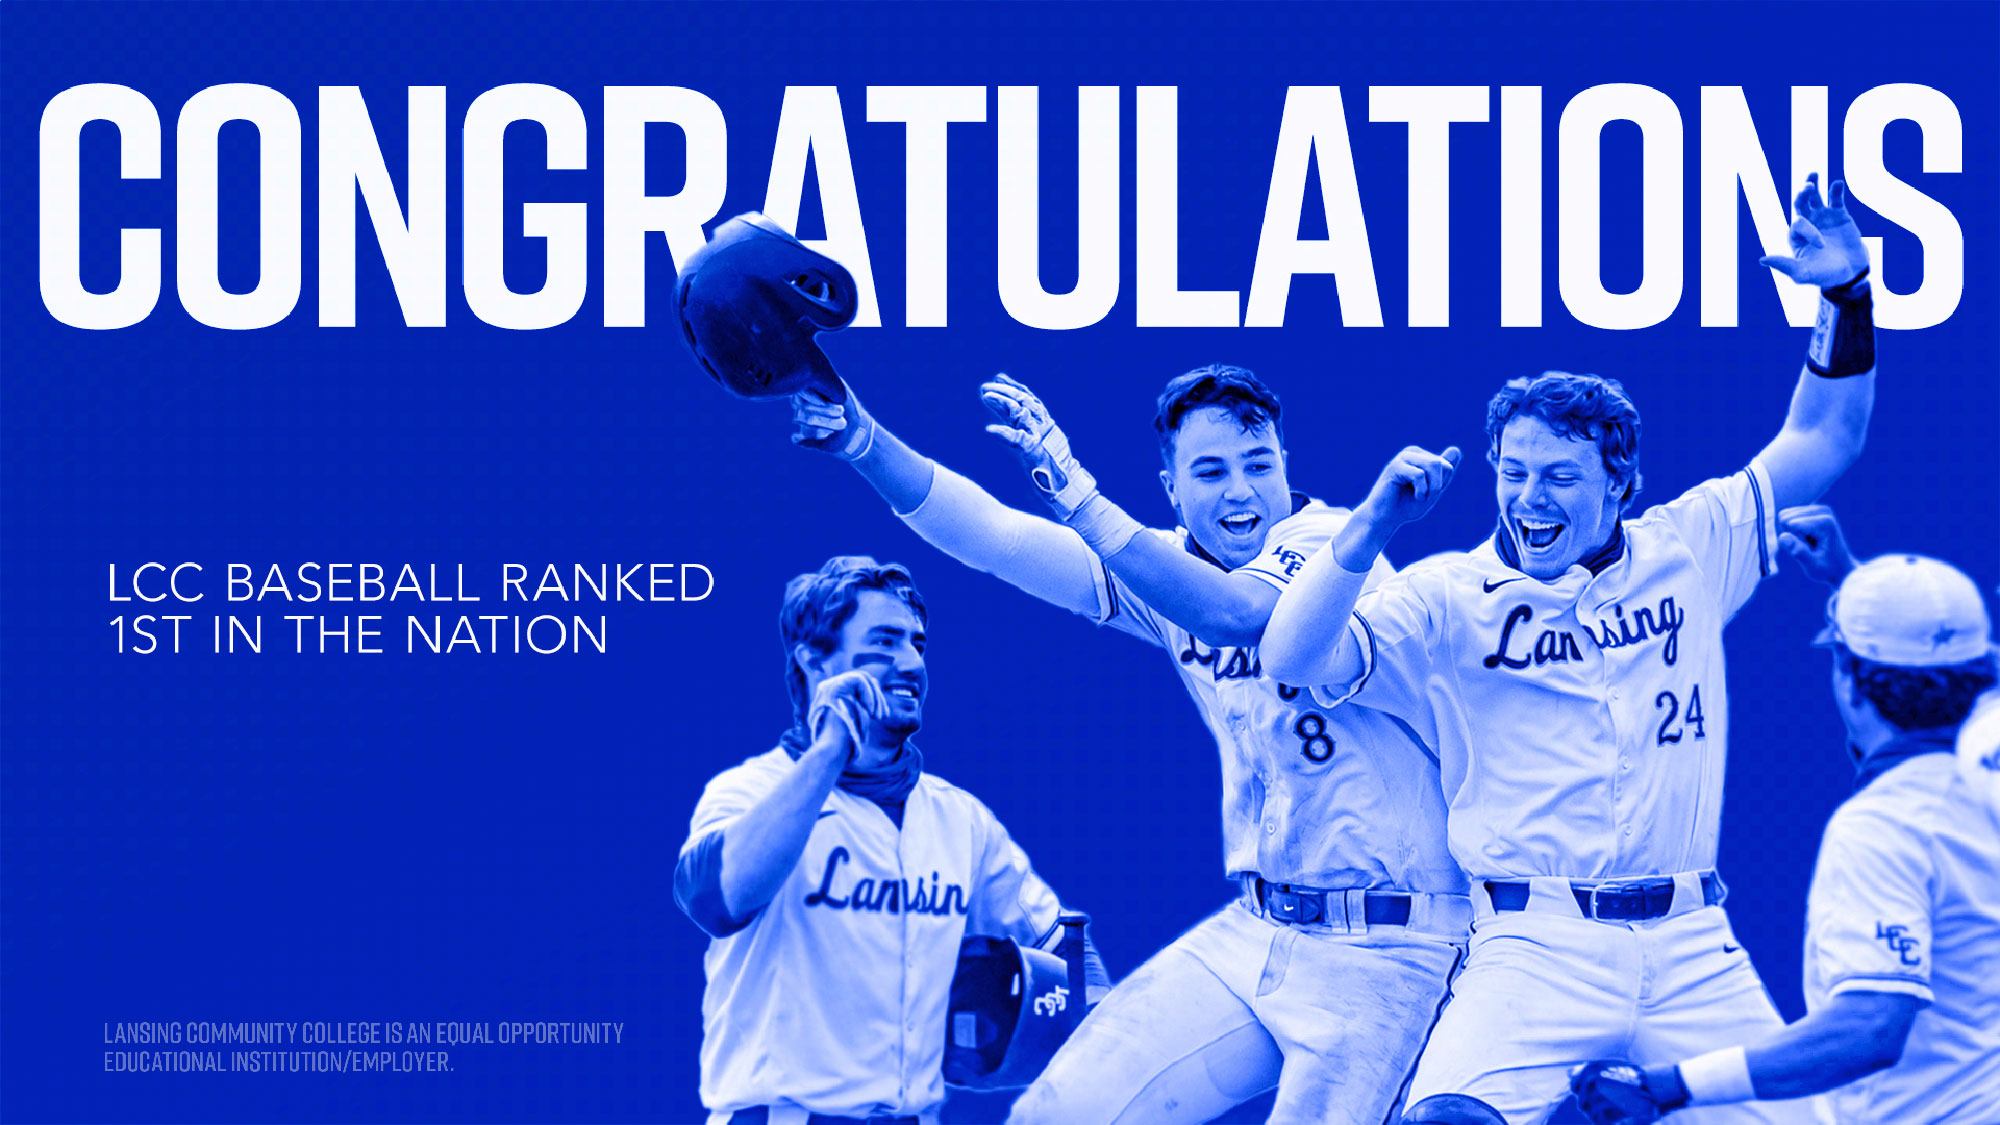 Congratulations - lcc baseball ranked 1st in the nation